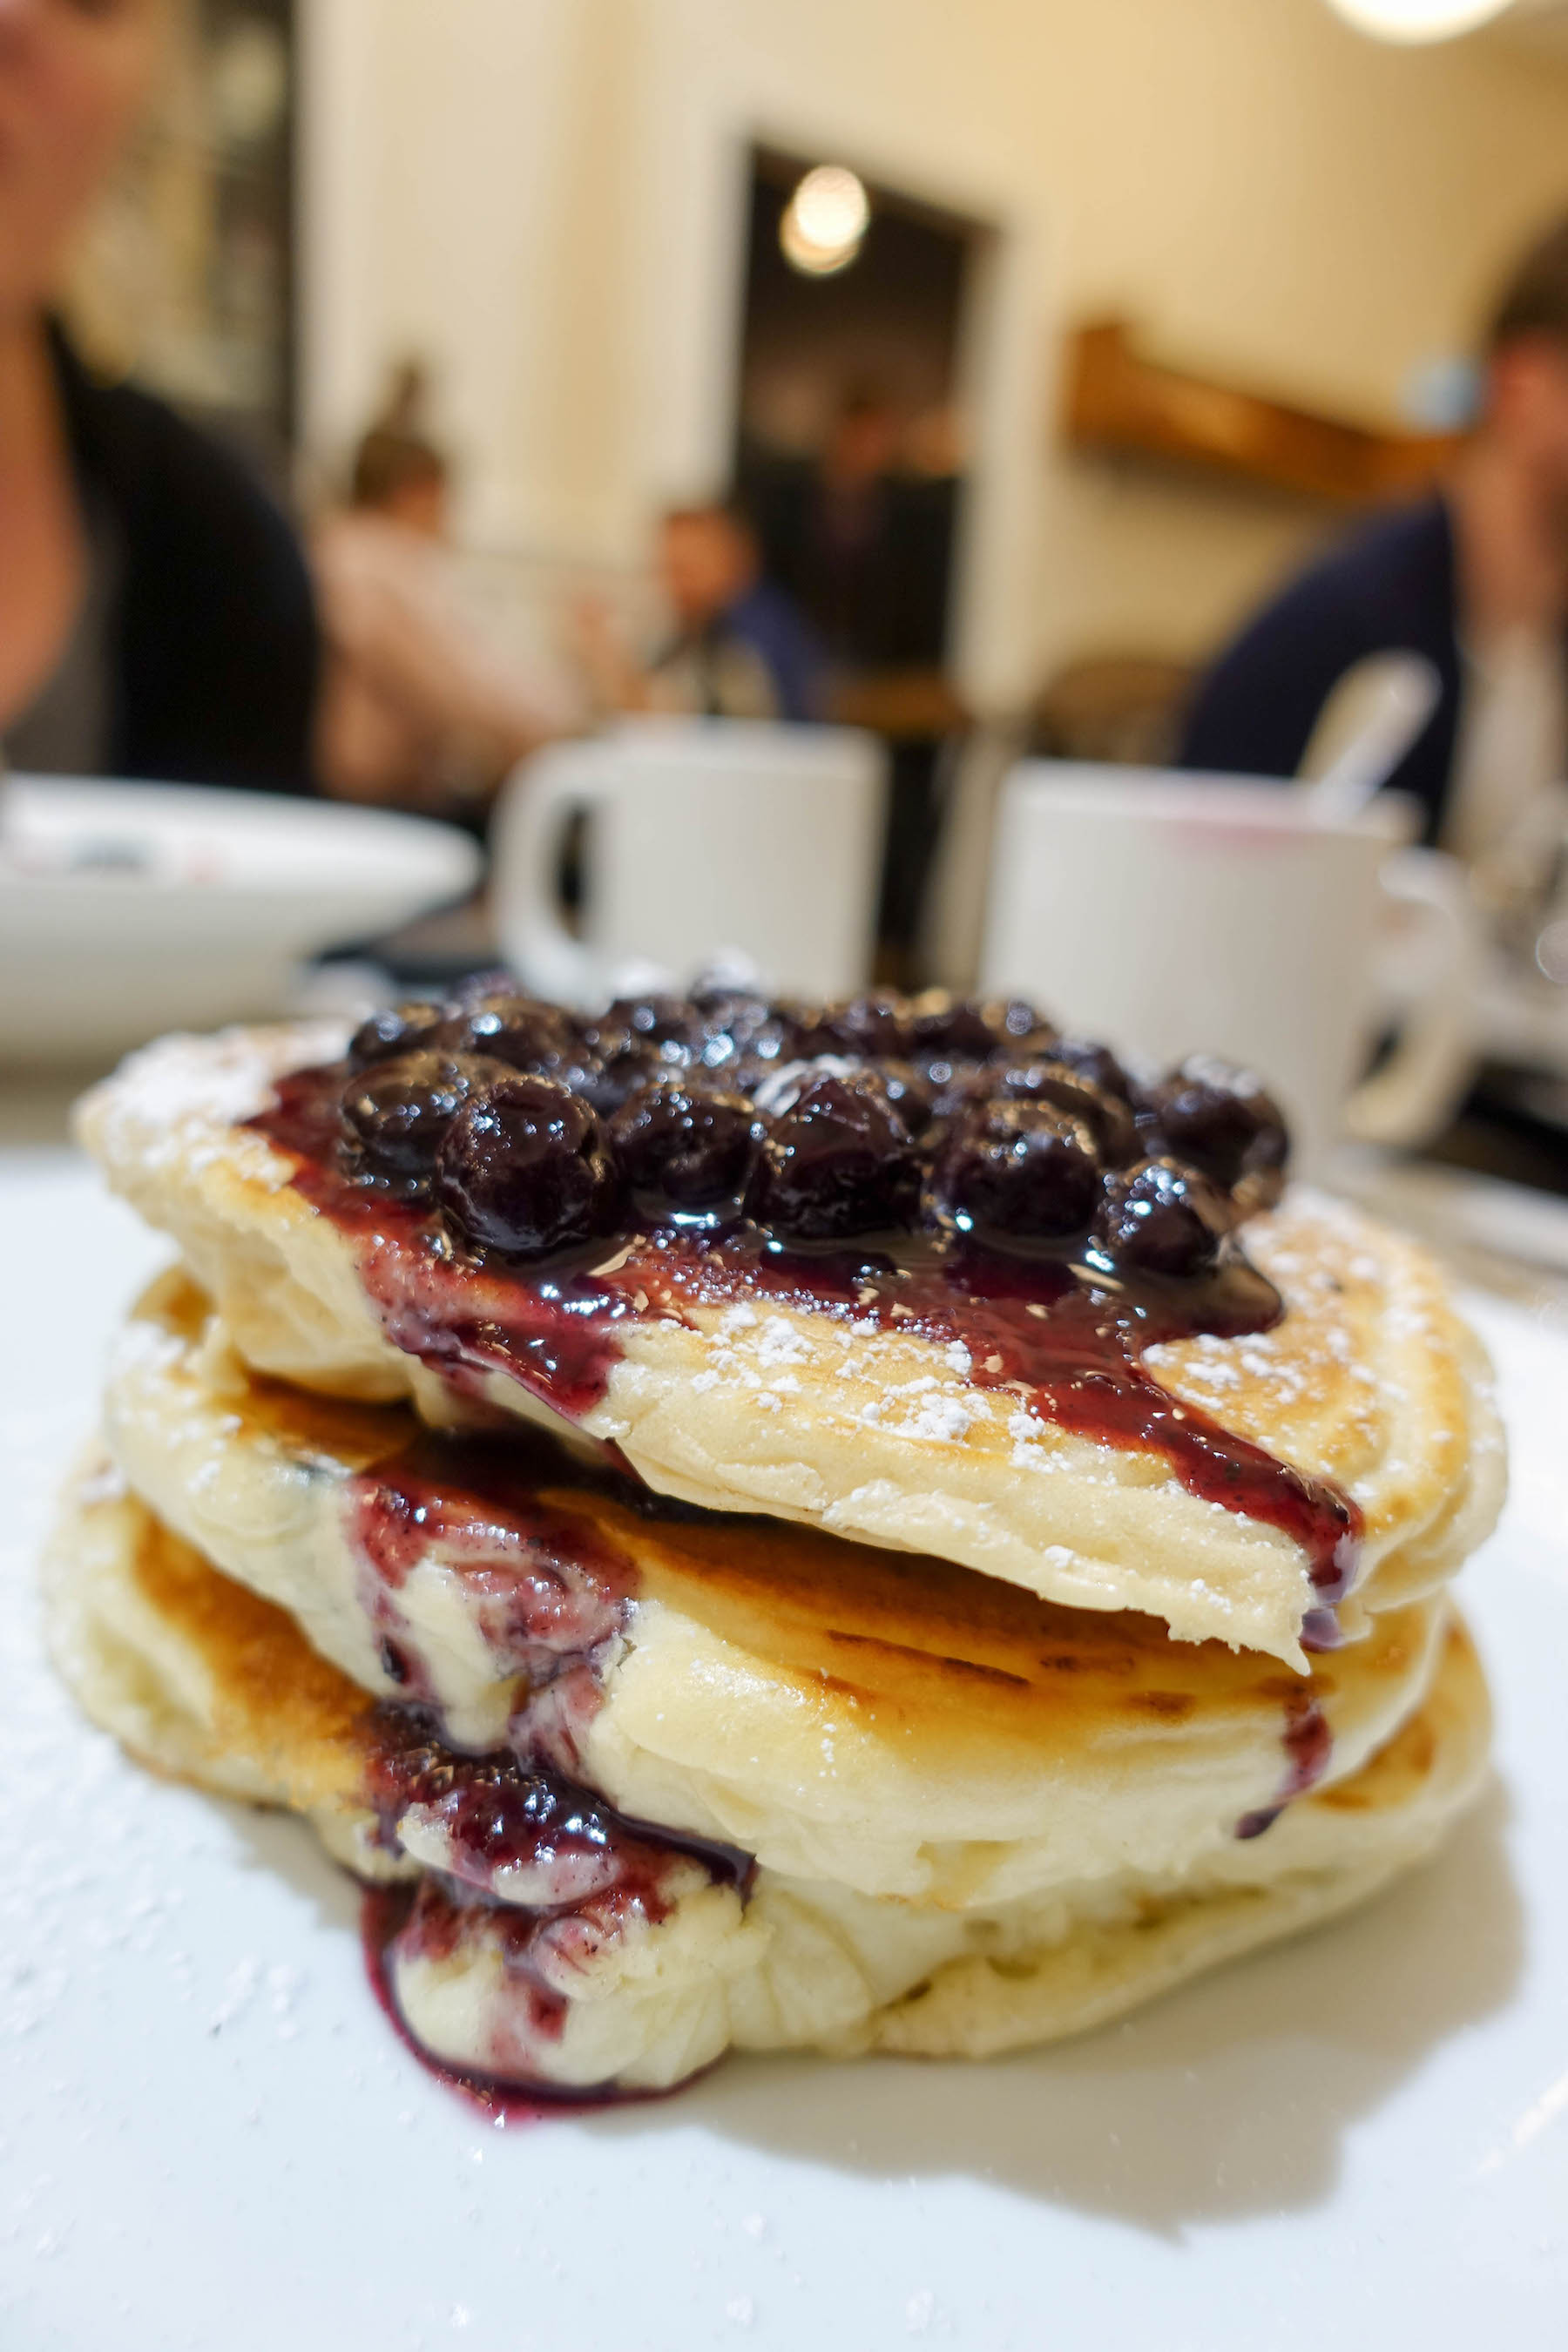 suelovesnyc_glutenfrei_fruhstucken_in_new_york_fruhstuck_new_york_vegan_glutenfrei_friedmans_glutenfree_pancakes